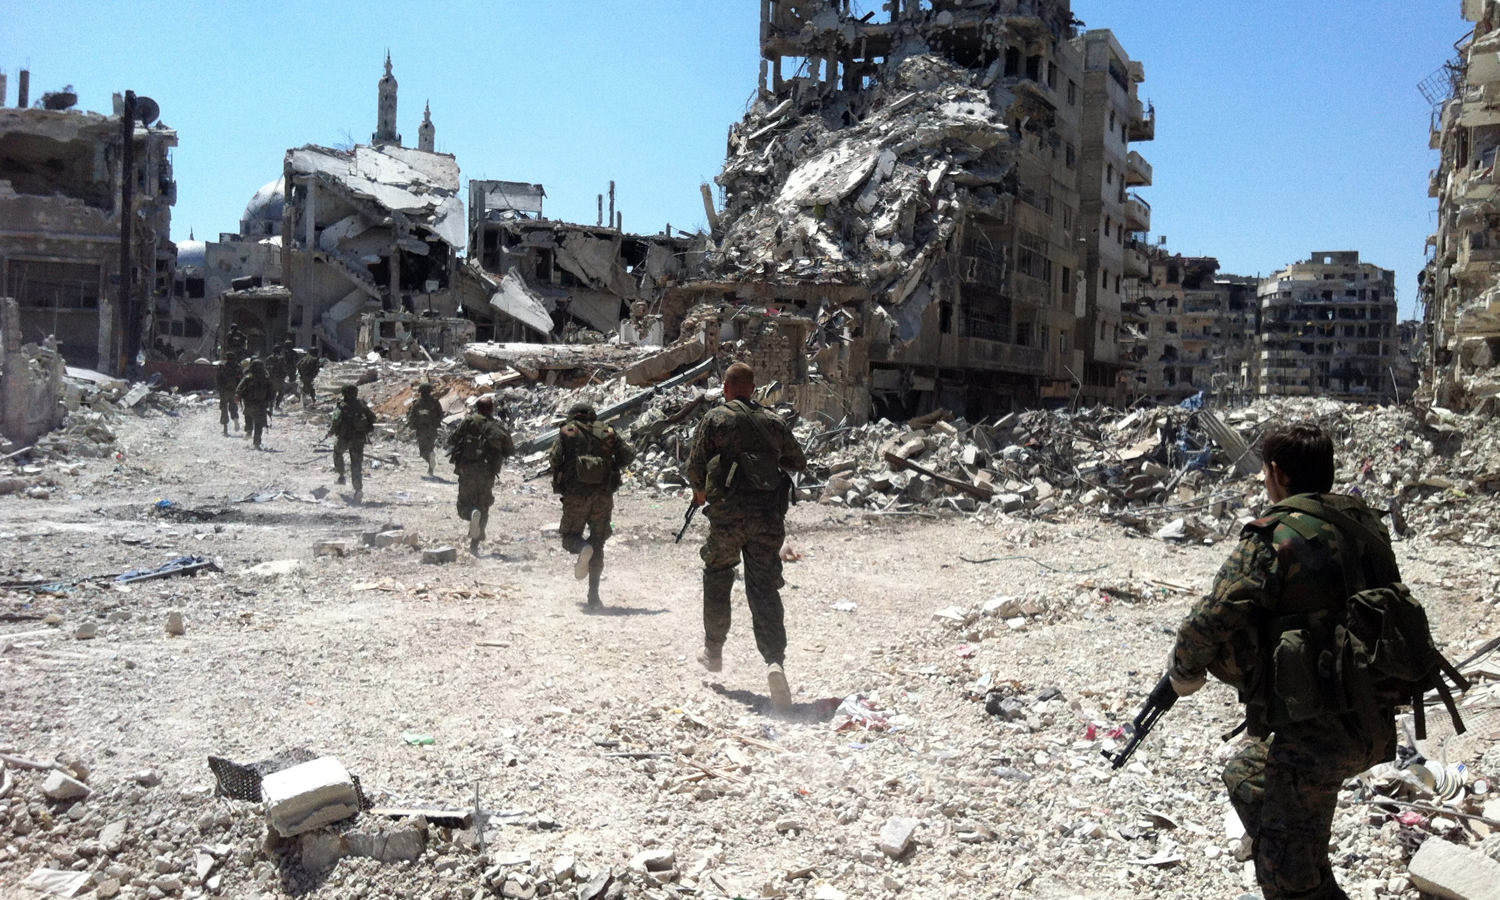 Members of the Syrian regime forces participating in the battles of the al-Khalidiya neighborhood in Homs city - July 2013 (AFP)